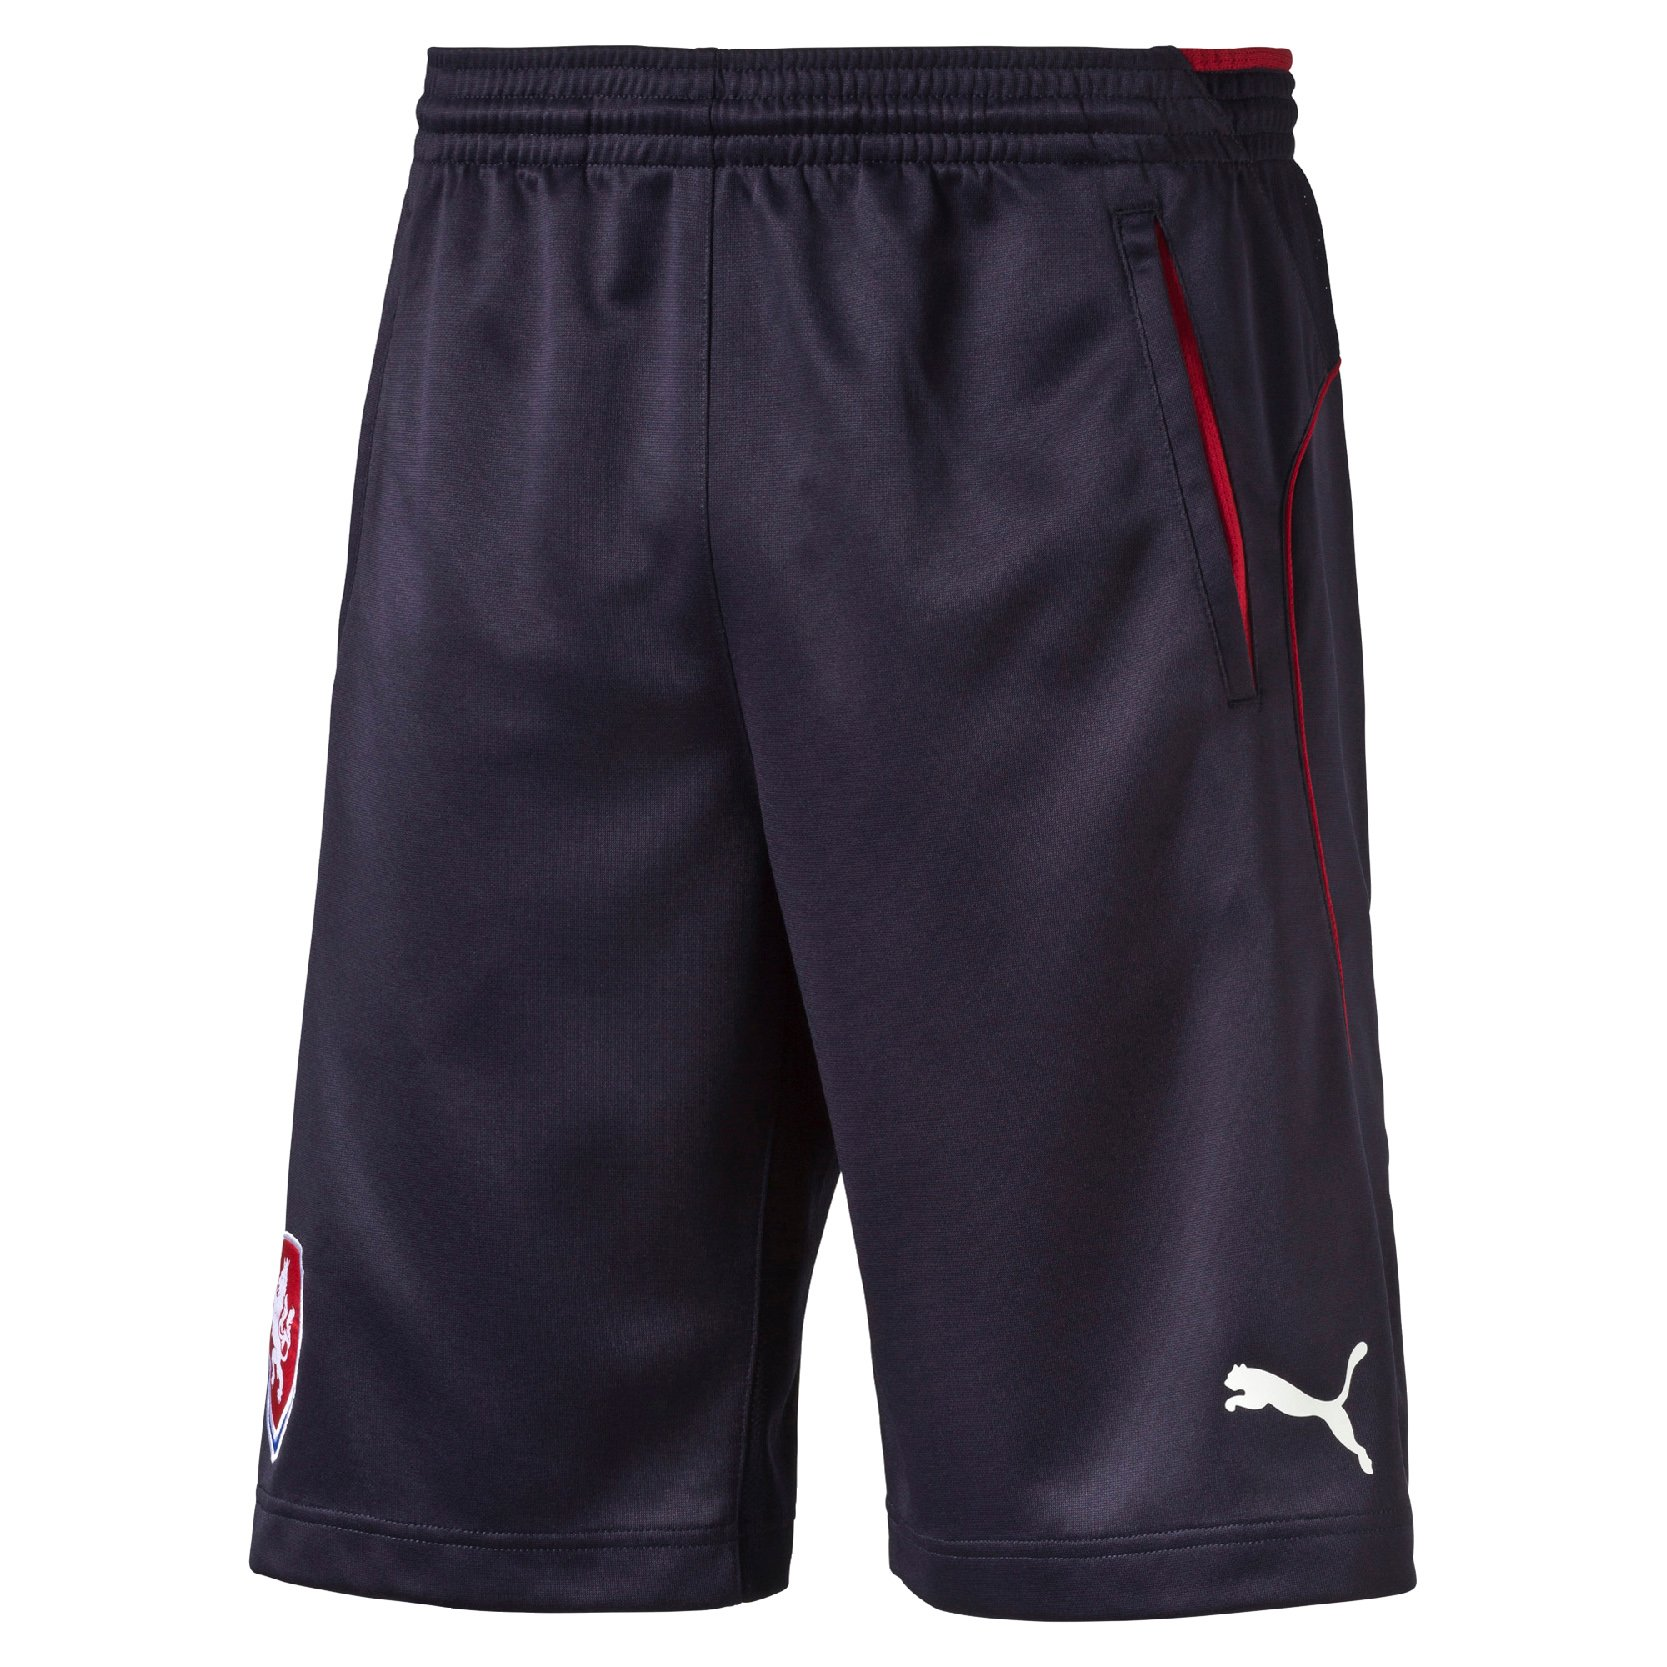 Šortky Puma Czech Republic Training Shorts